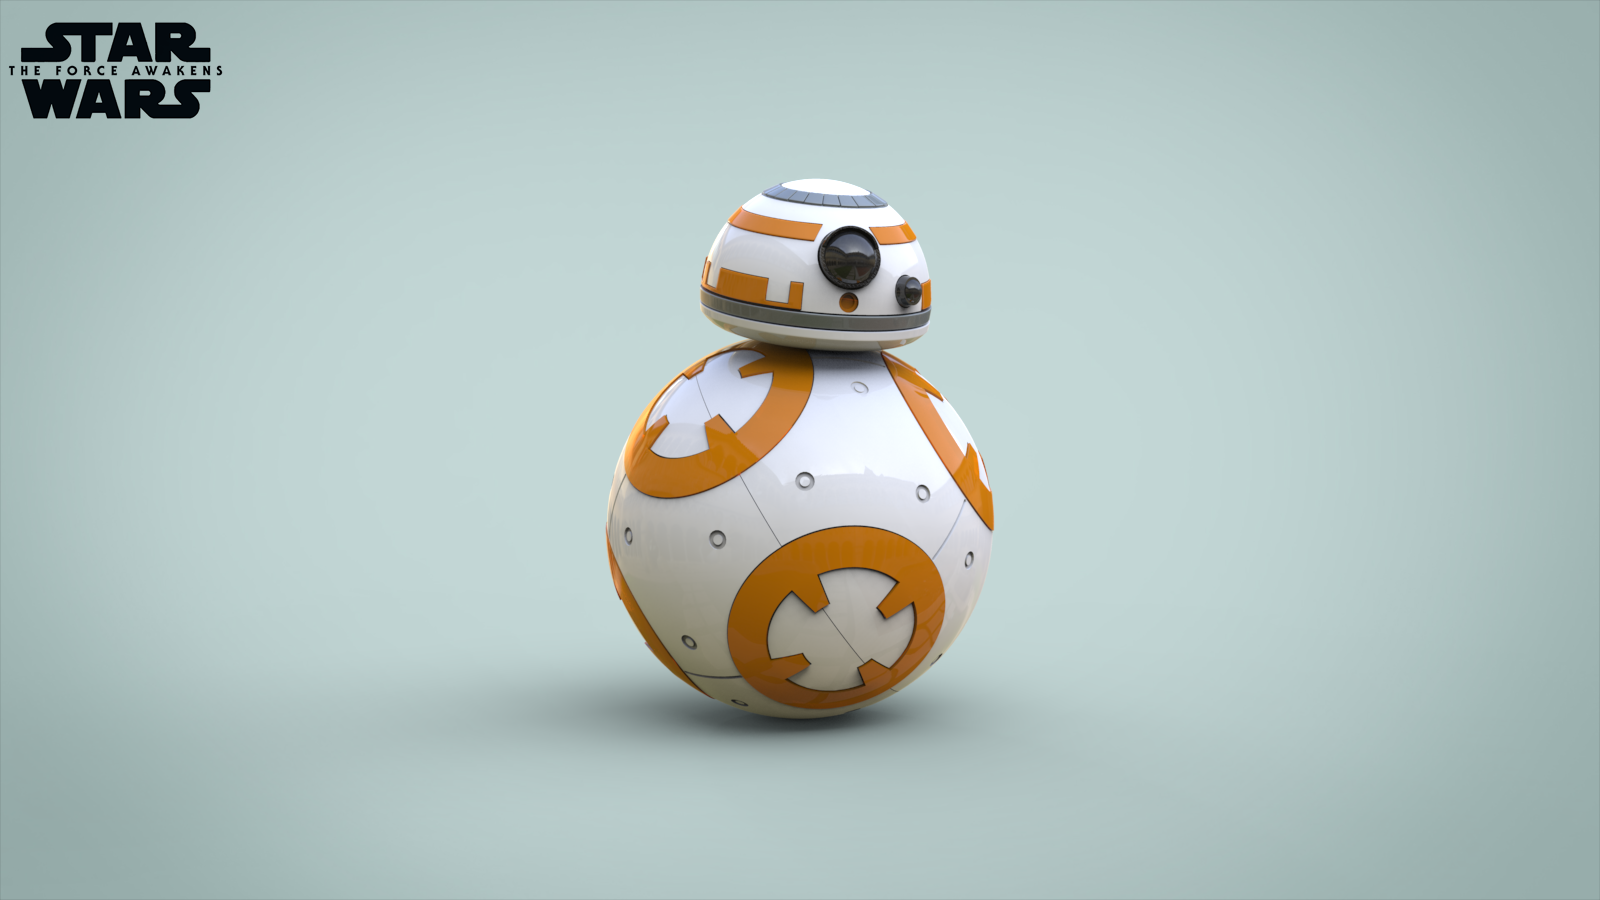 bb8 wallpaper hd - photo #27